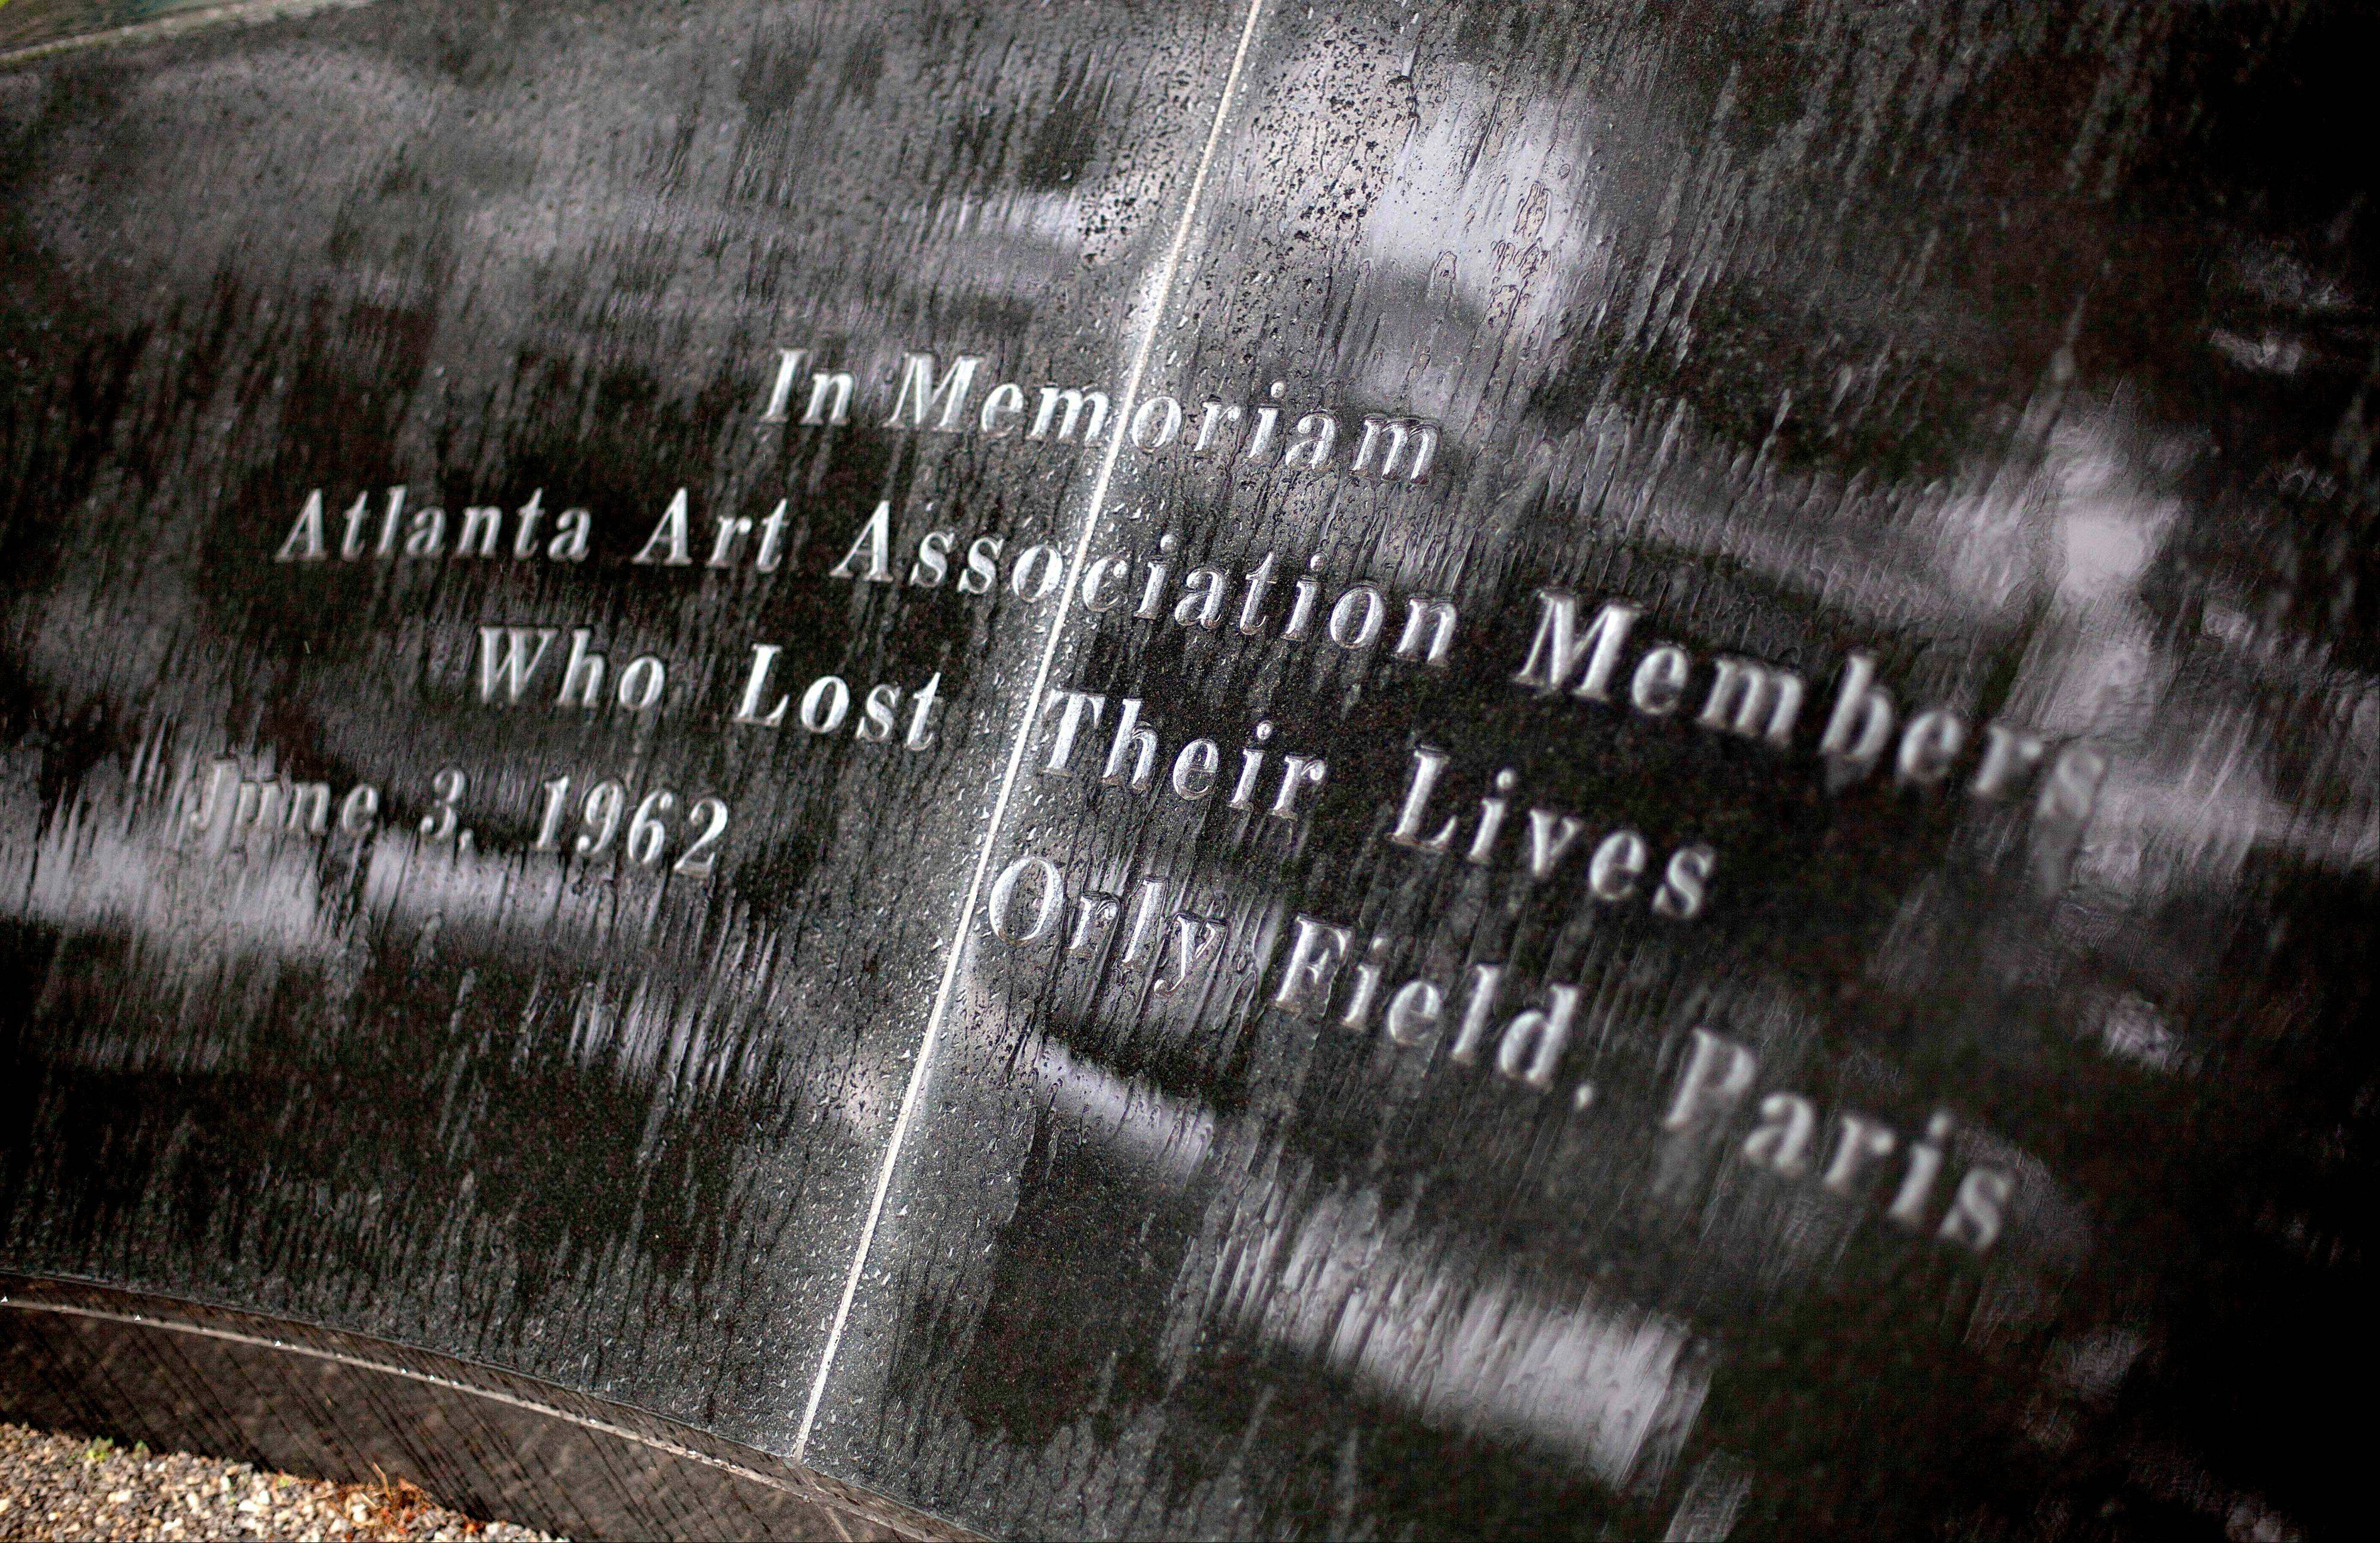 This May 9, 2012 photo shows a memorial to the victims of the June 3, 1962 plane crash at Orly Field in Paris that killed 100 of Atlanta's cultural leaders, at the High Museum of Art in Atlanta.